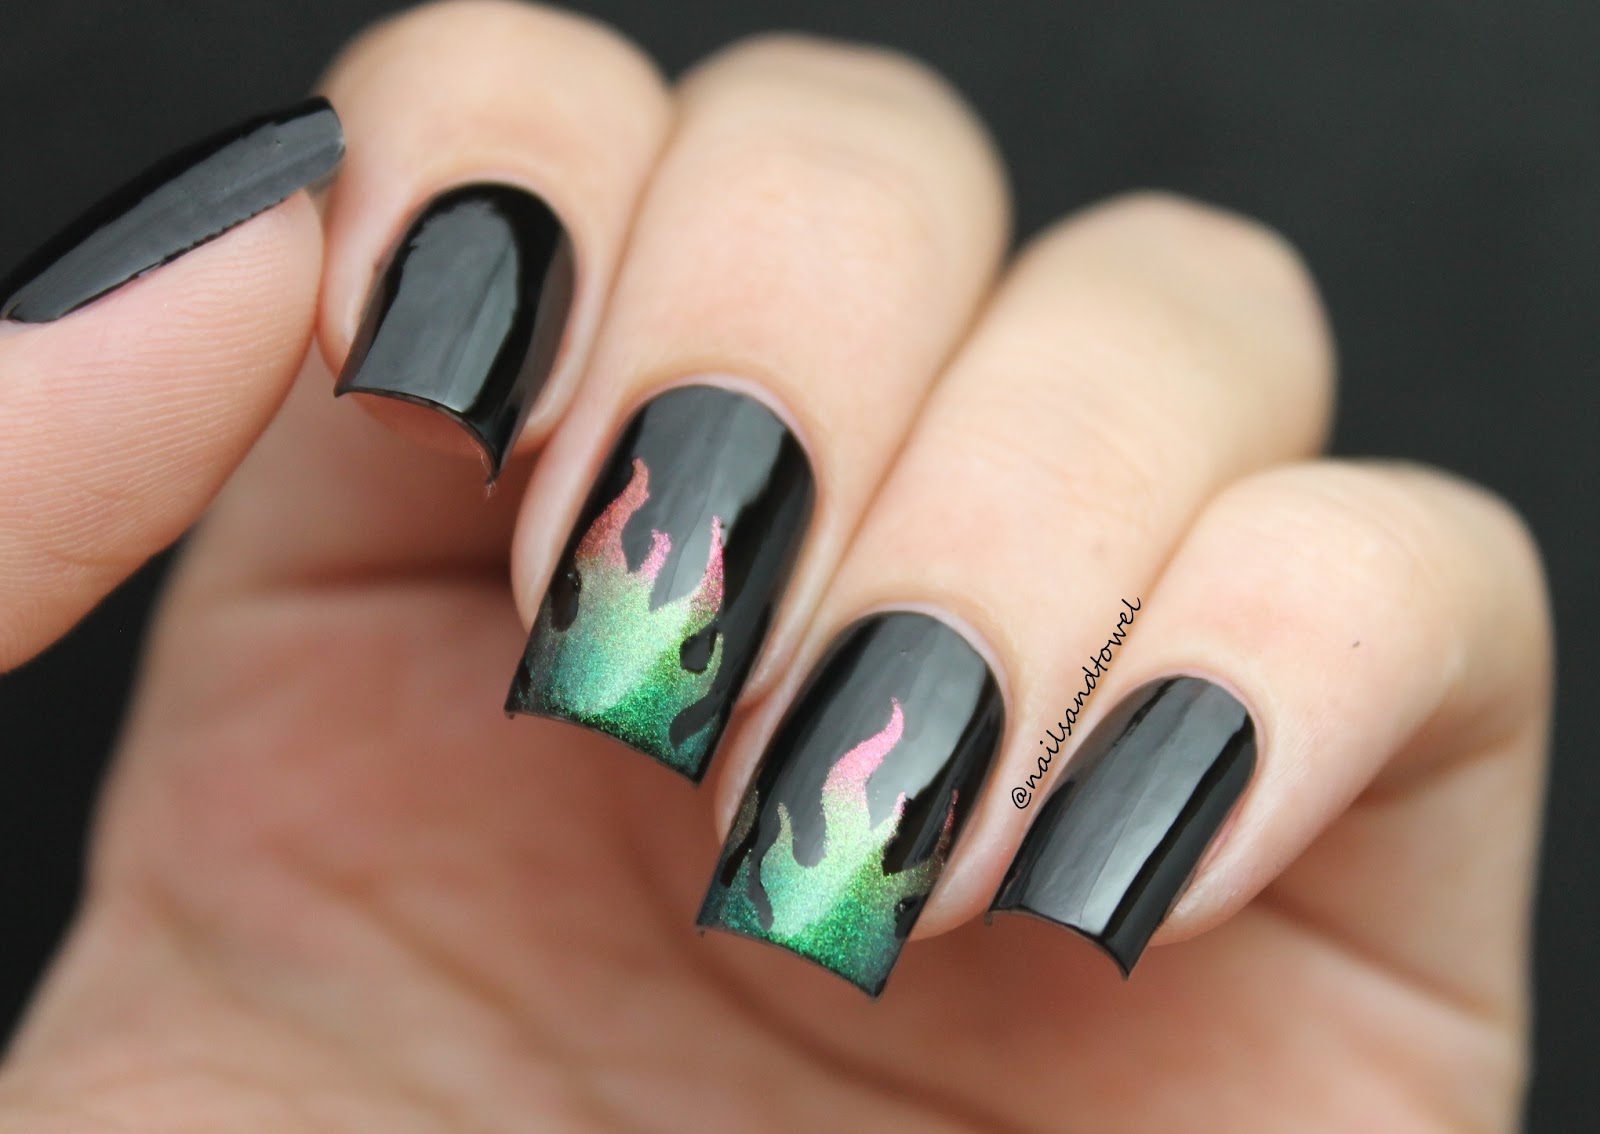 My Nail Art Journal: Watch Out!! Nails On Fire...